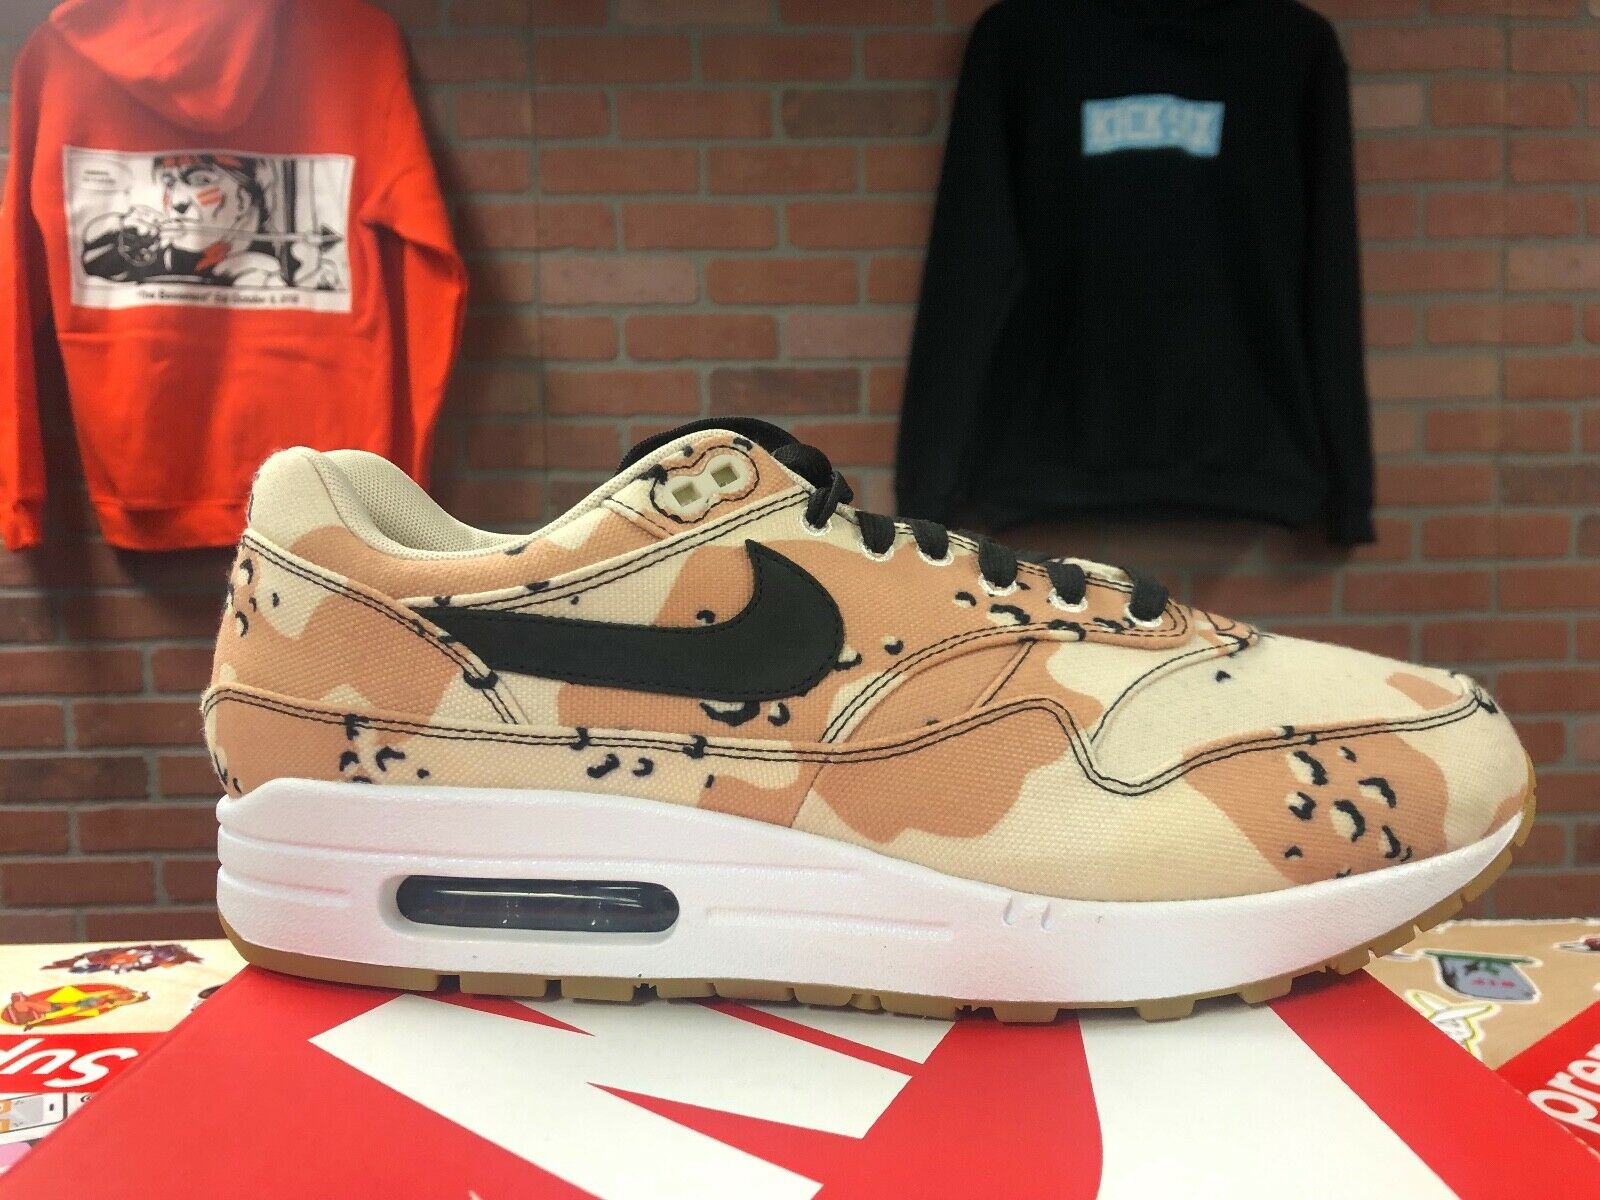 Nike Air Max 1 Desert Camo New DS Size 10 875844 204